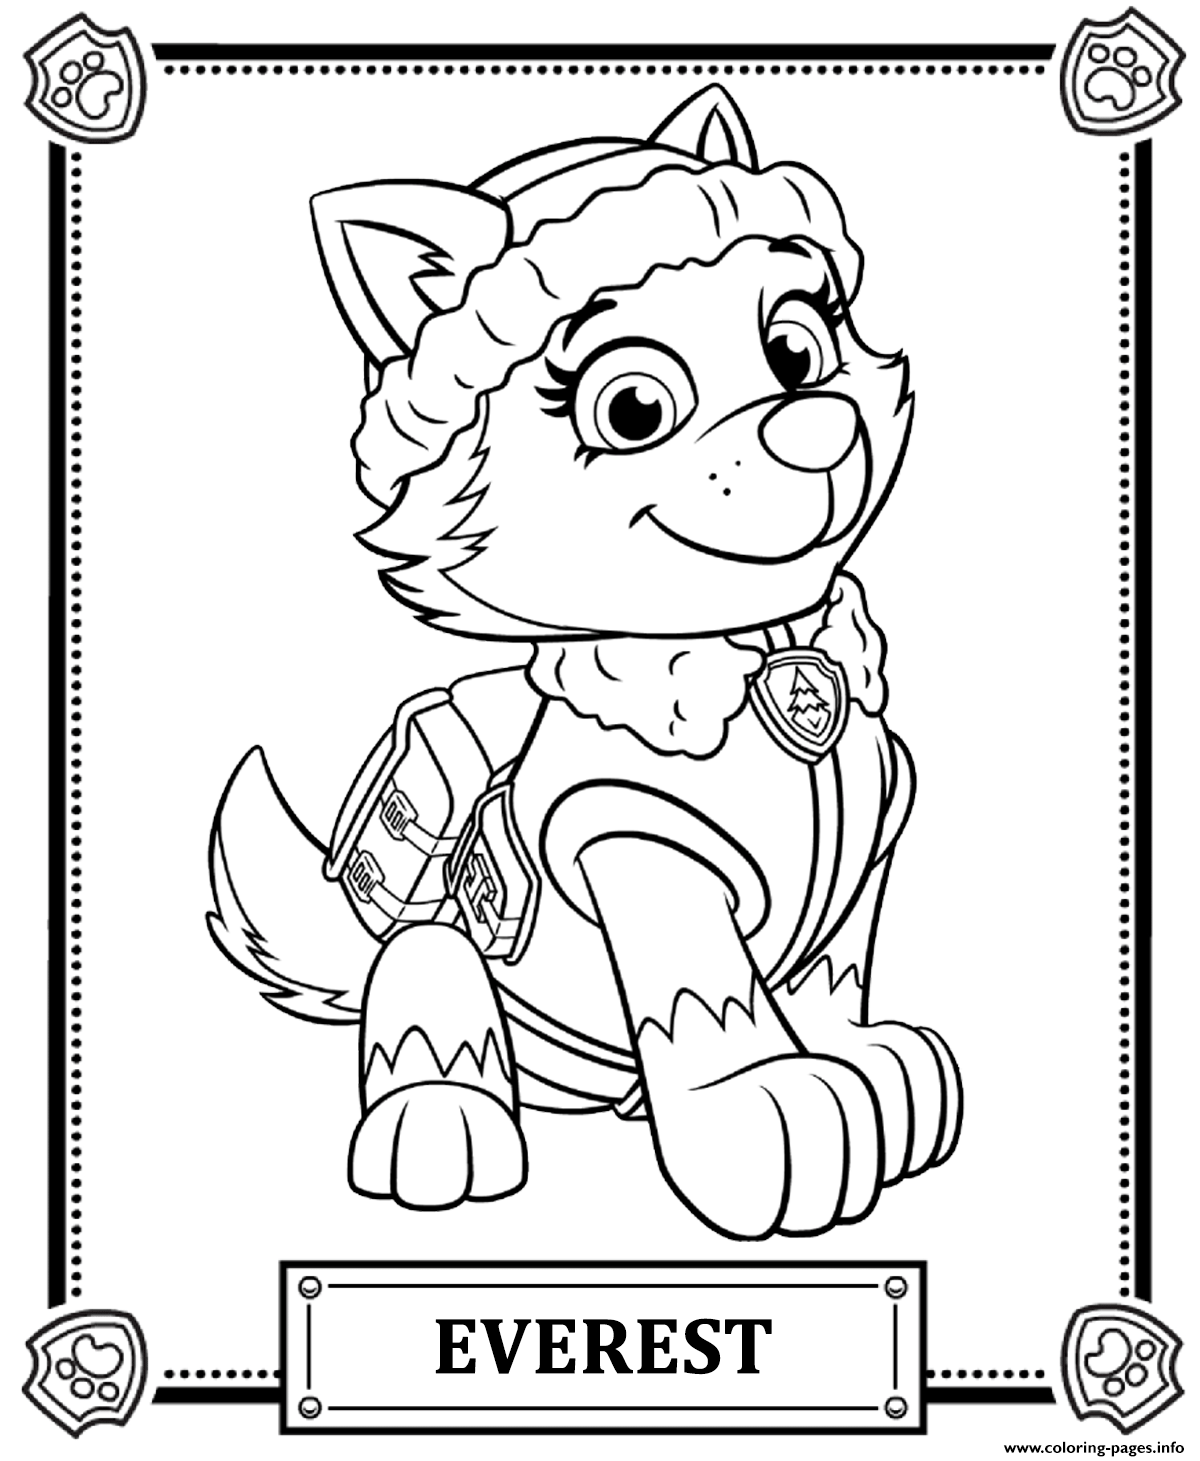 Colouring sheets to colour - Paw Patrol Everest Coloring Pages Printable And Coloring Book To Print For Free Find More Coloring Pages Online For Kids And Adults Of Paw Patrol Everest